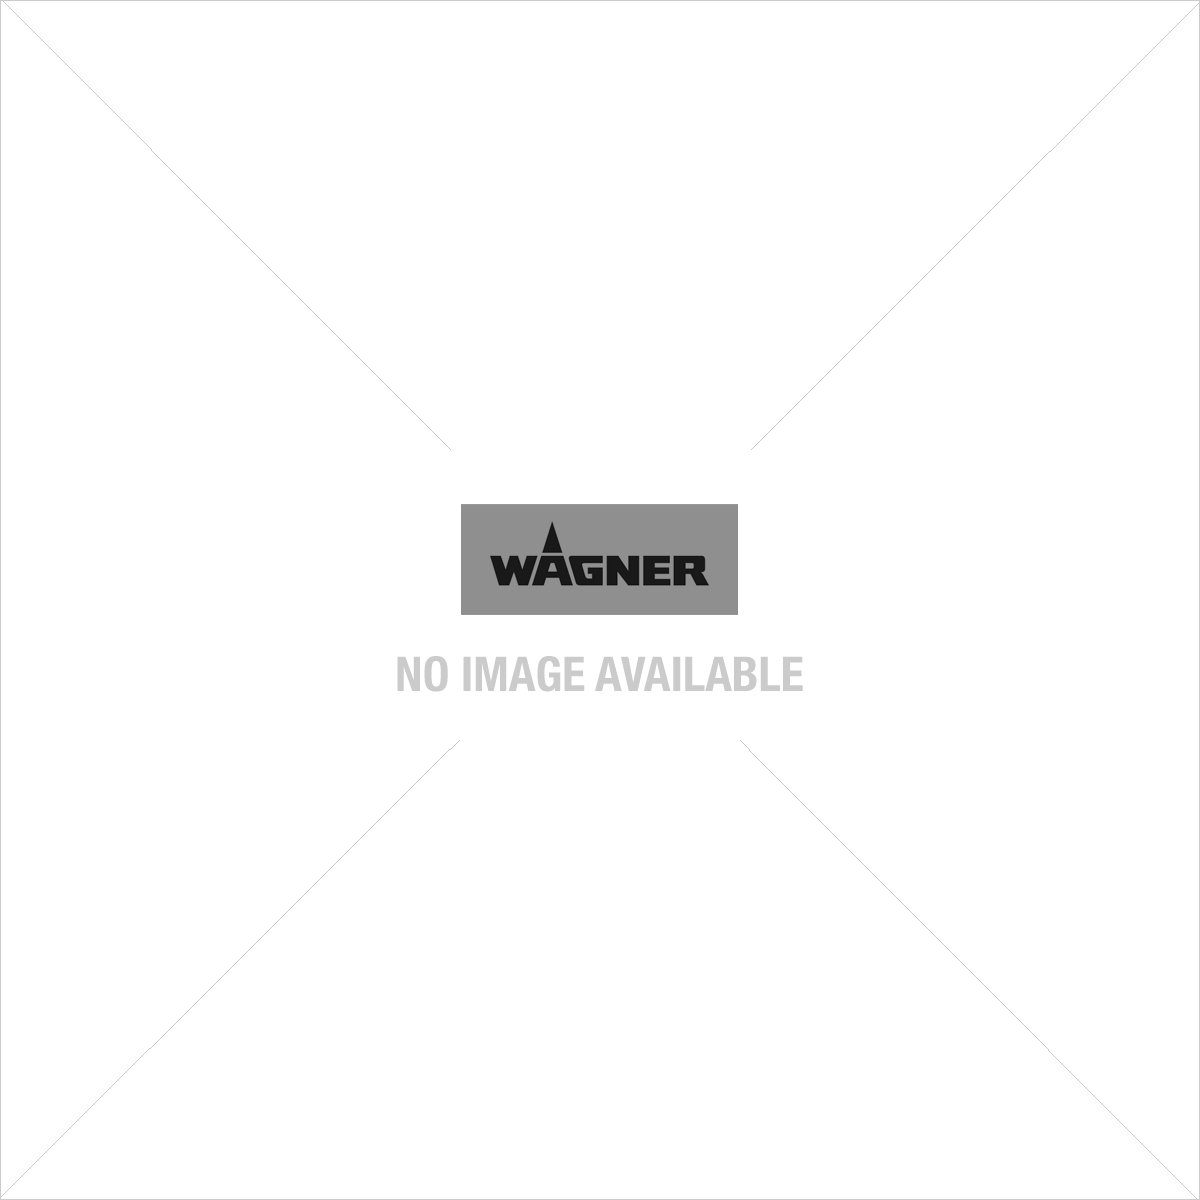 wagner w450 se pistolet a peinture airless. Black Bedroom Furniture Sets. Home Design Ideas